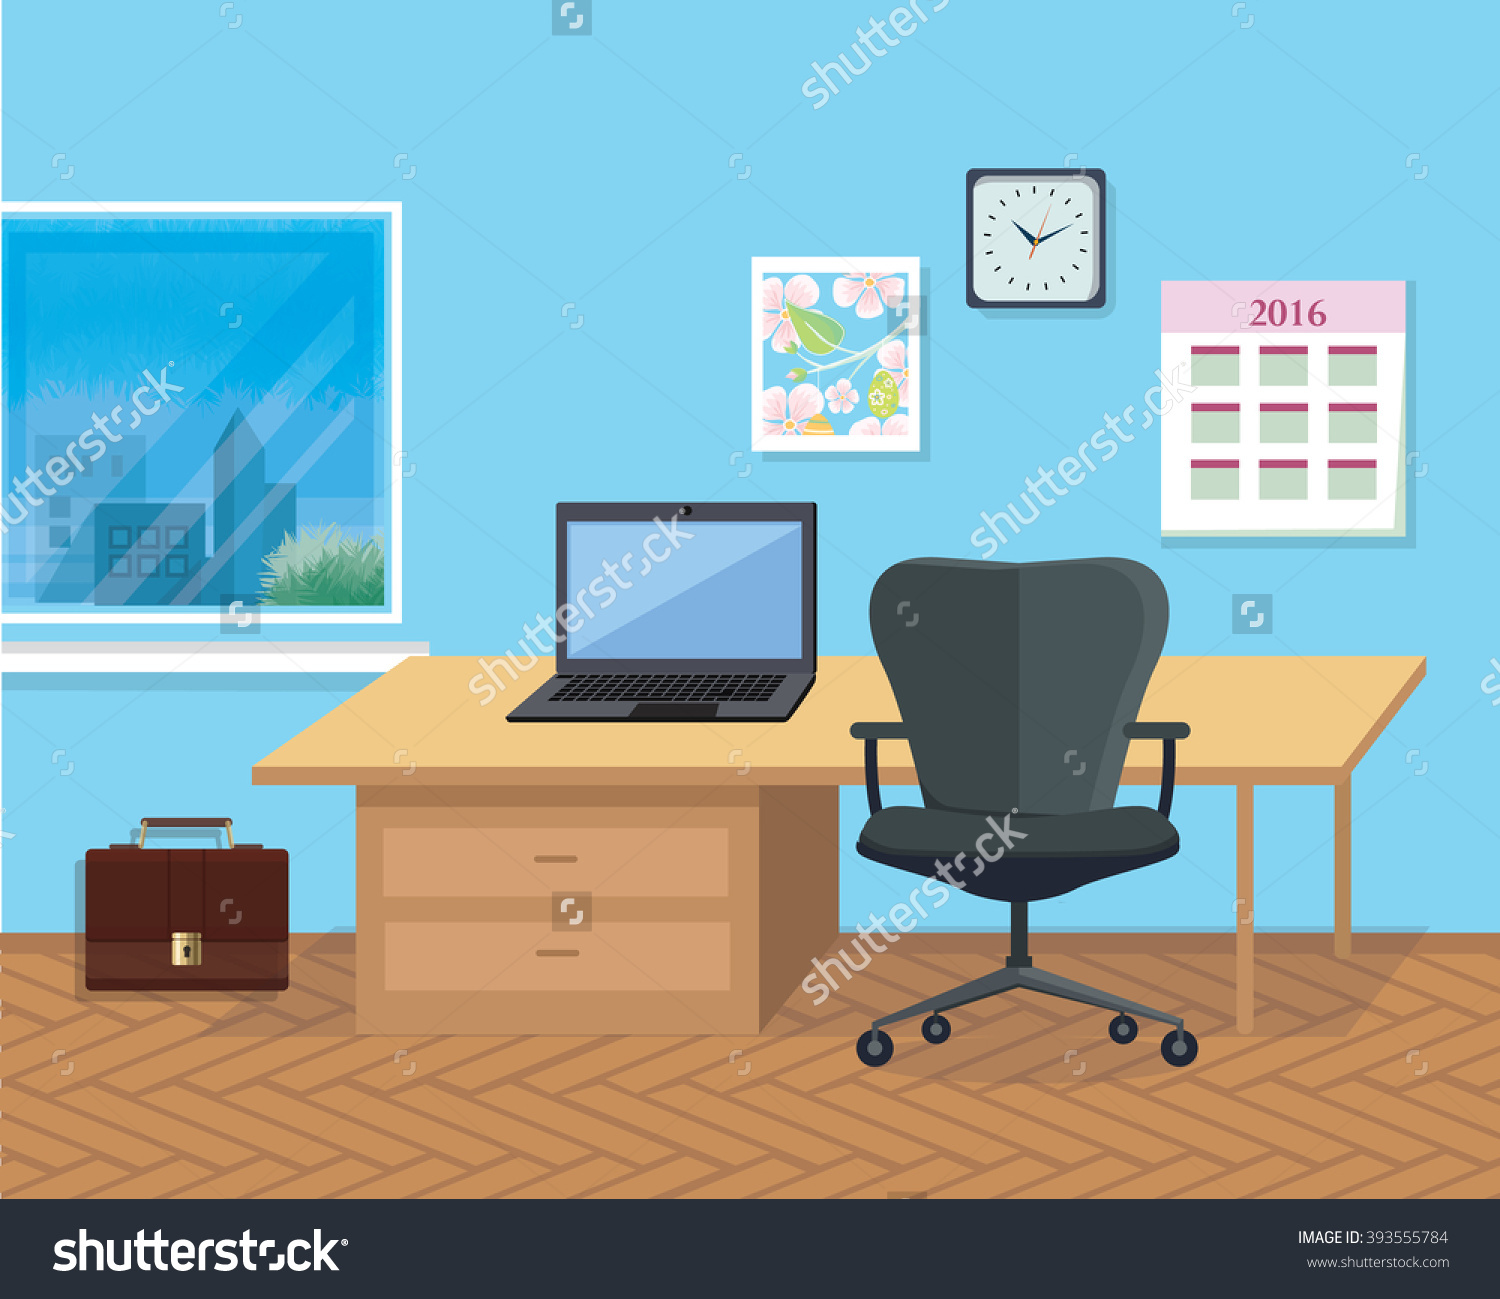 Room clipart office room #10